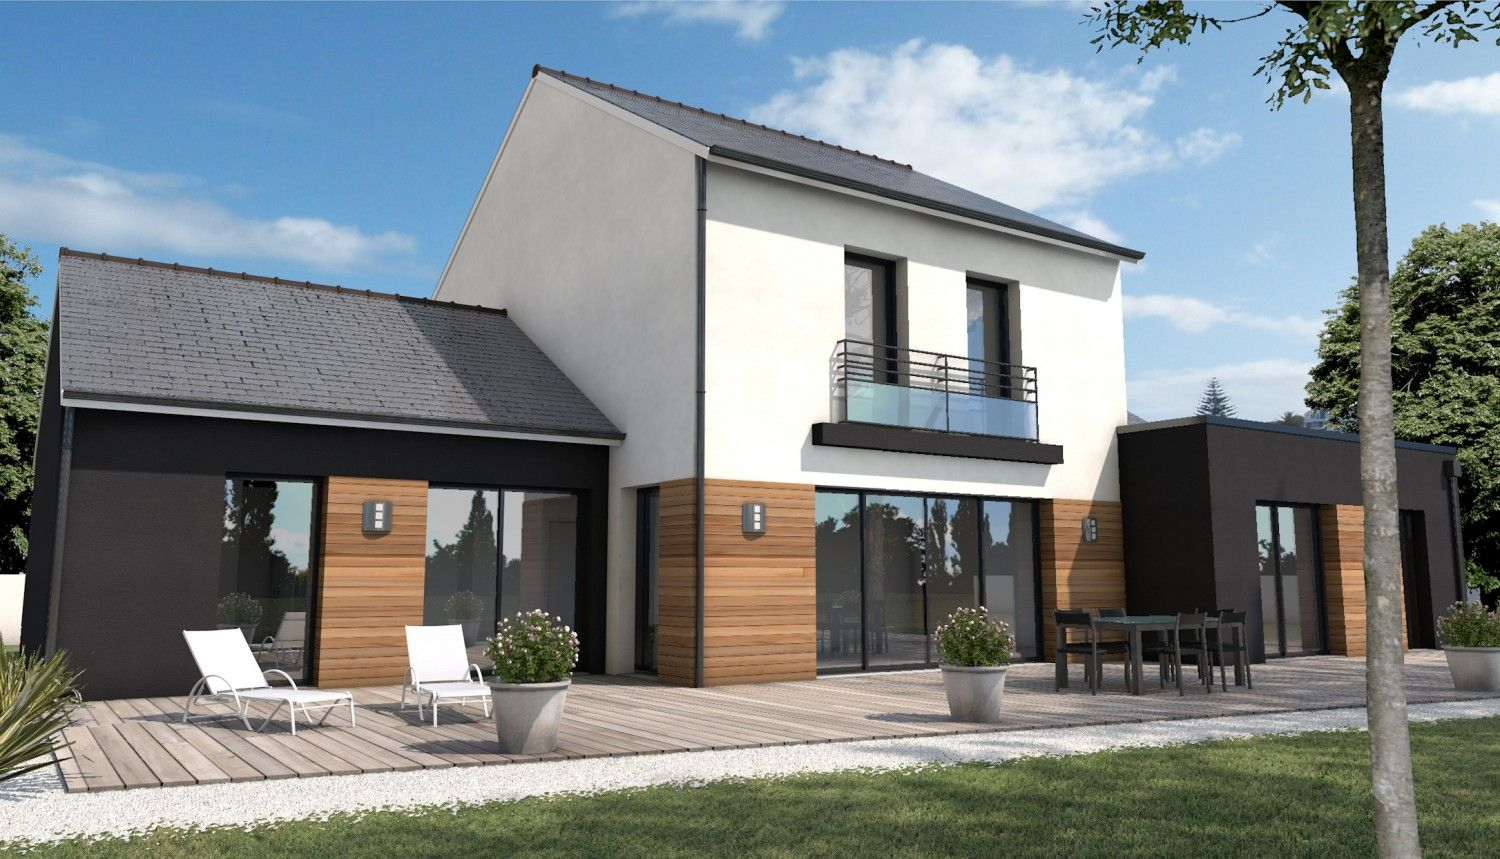 Maison traditionnelle herbignac 44 maison pinterest for Plan maison constructeur